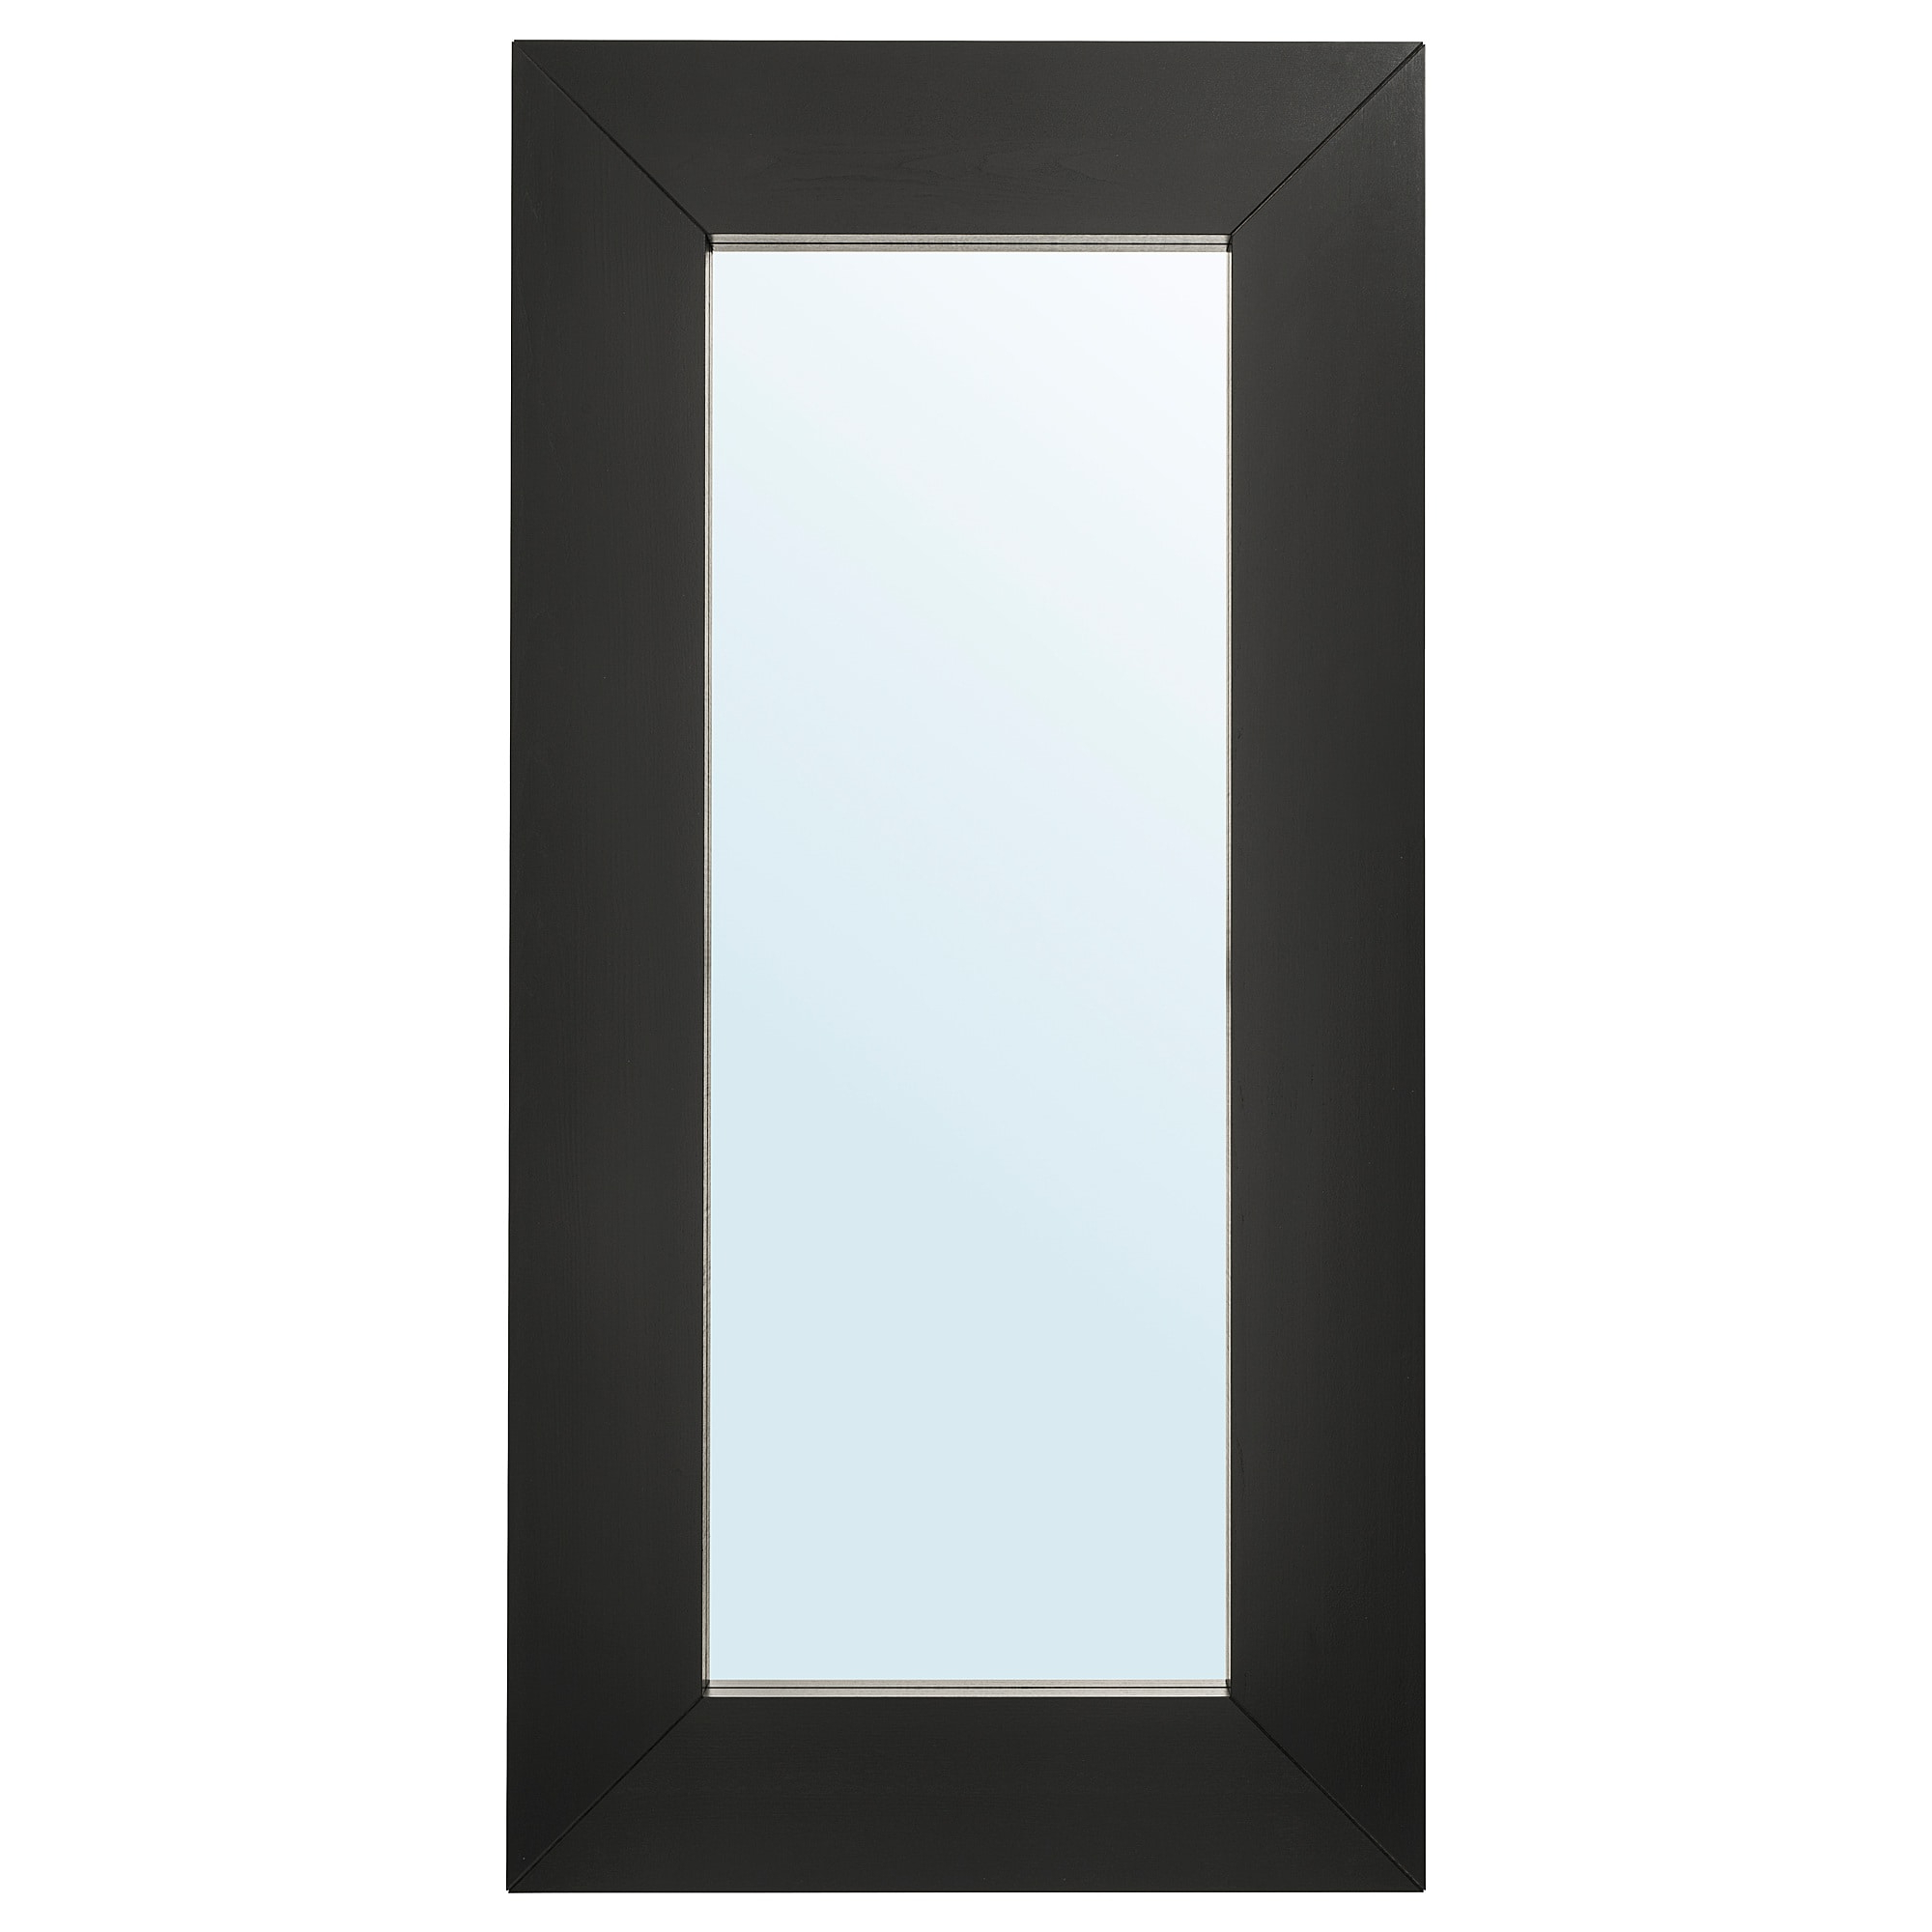 Mongstad Mirror, Black Brown Pertaining To Fashionable Ikea Round Wall Mirrors (View 6 of 20)